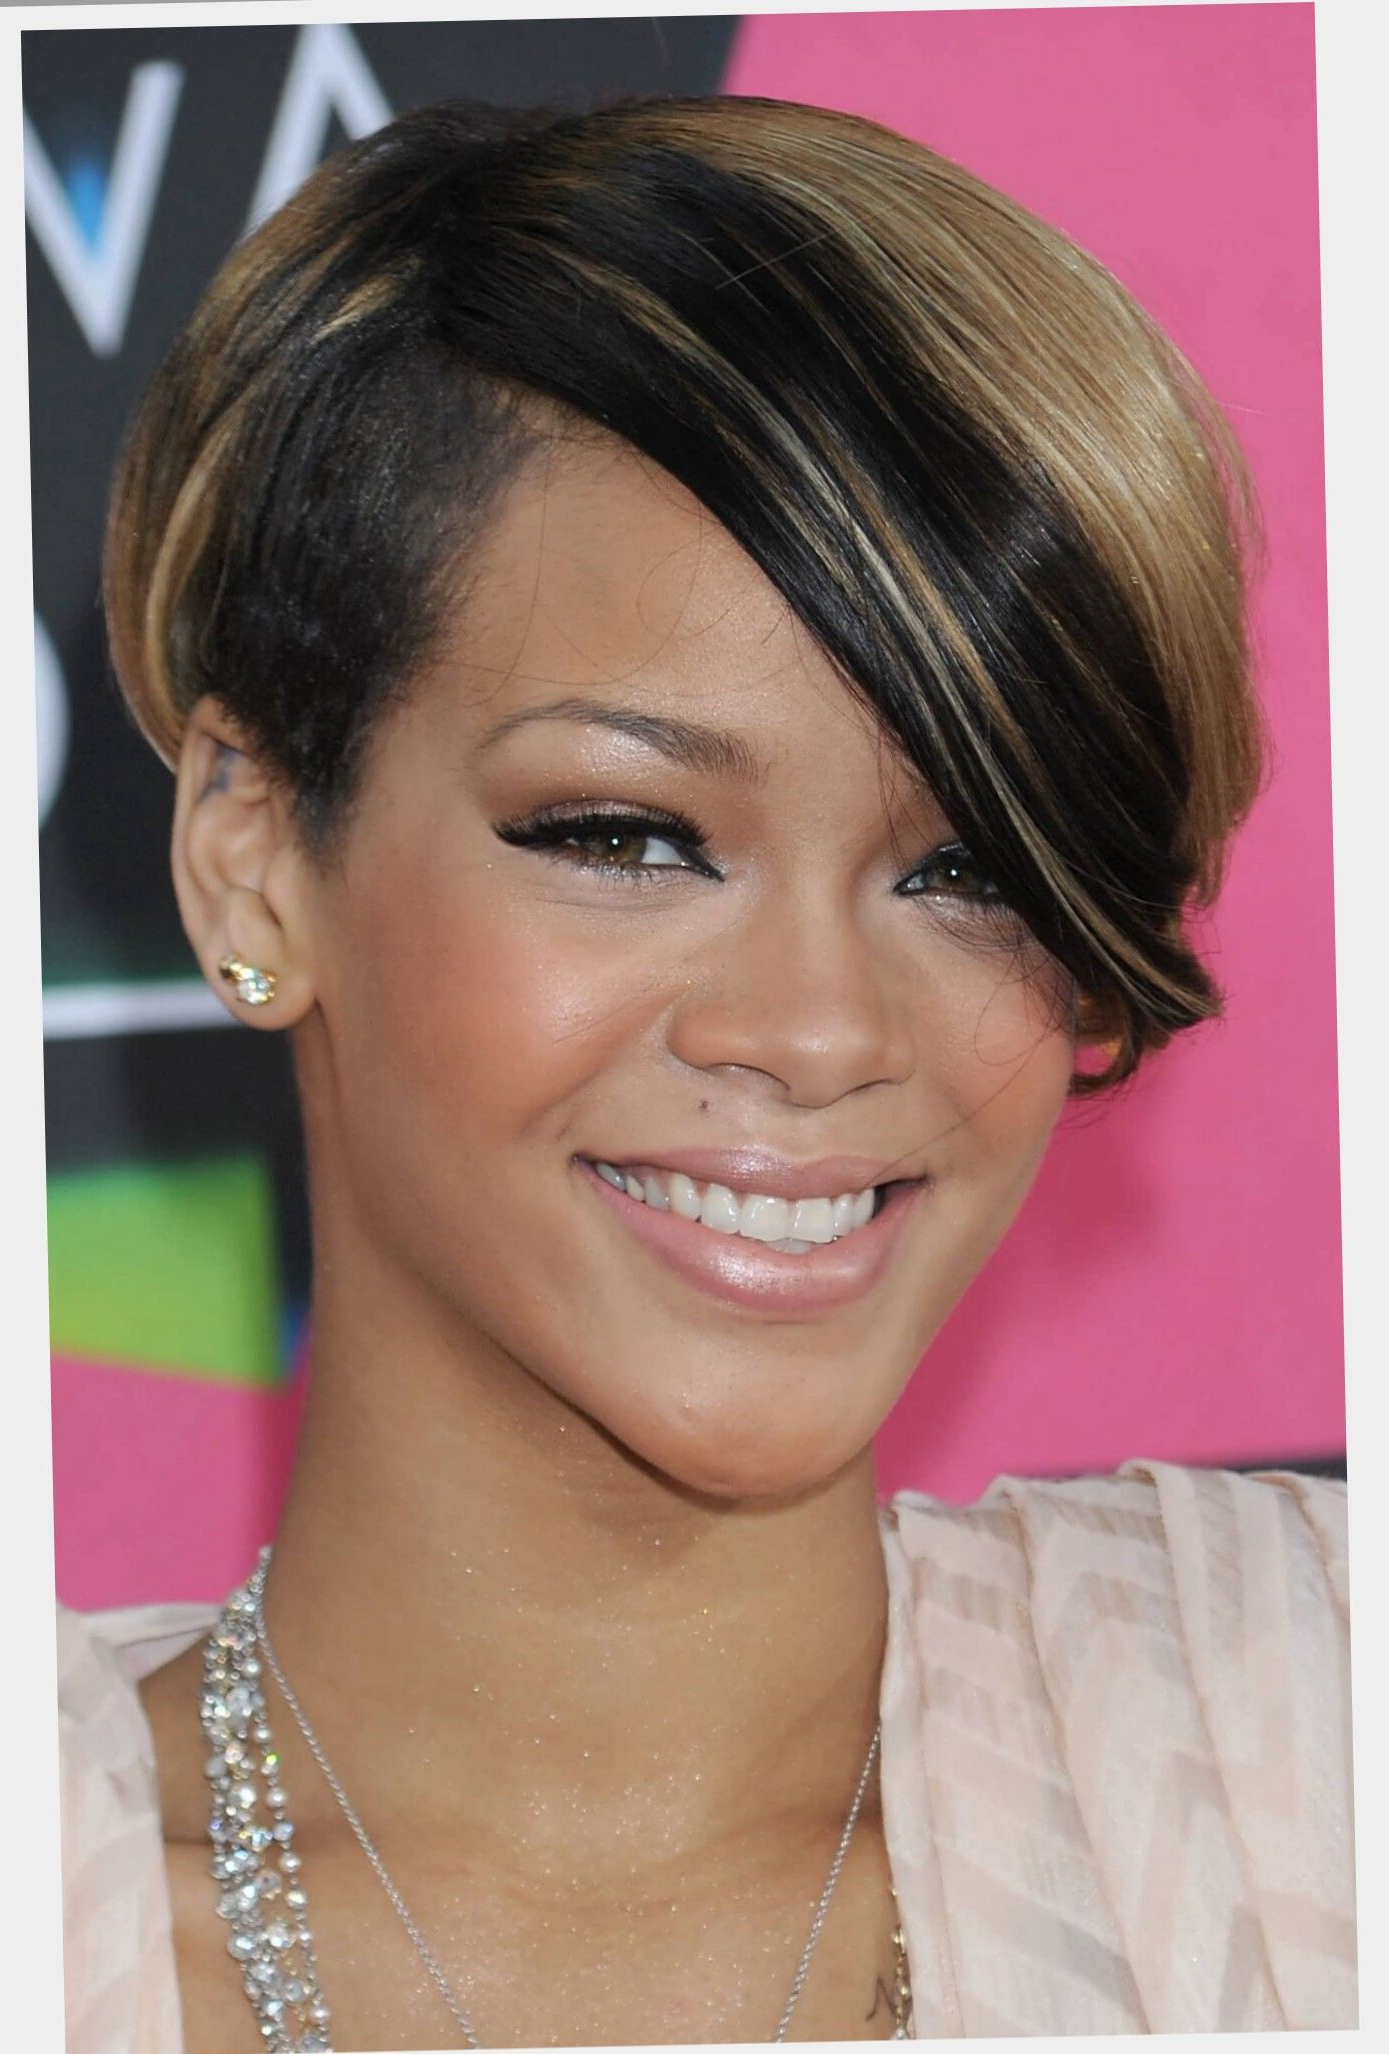 Pinnadine Crewe Morant On Short Hair Don't Care   Pinterest Throughout Short Haircuts For African American Women With Round Faces (View 6 of 25)